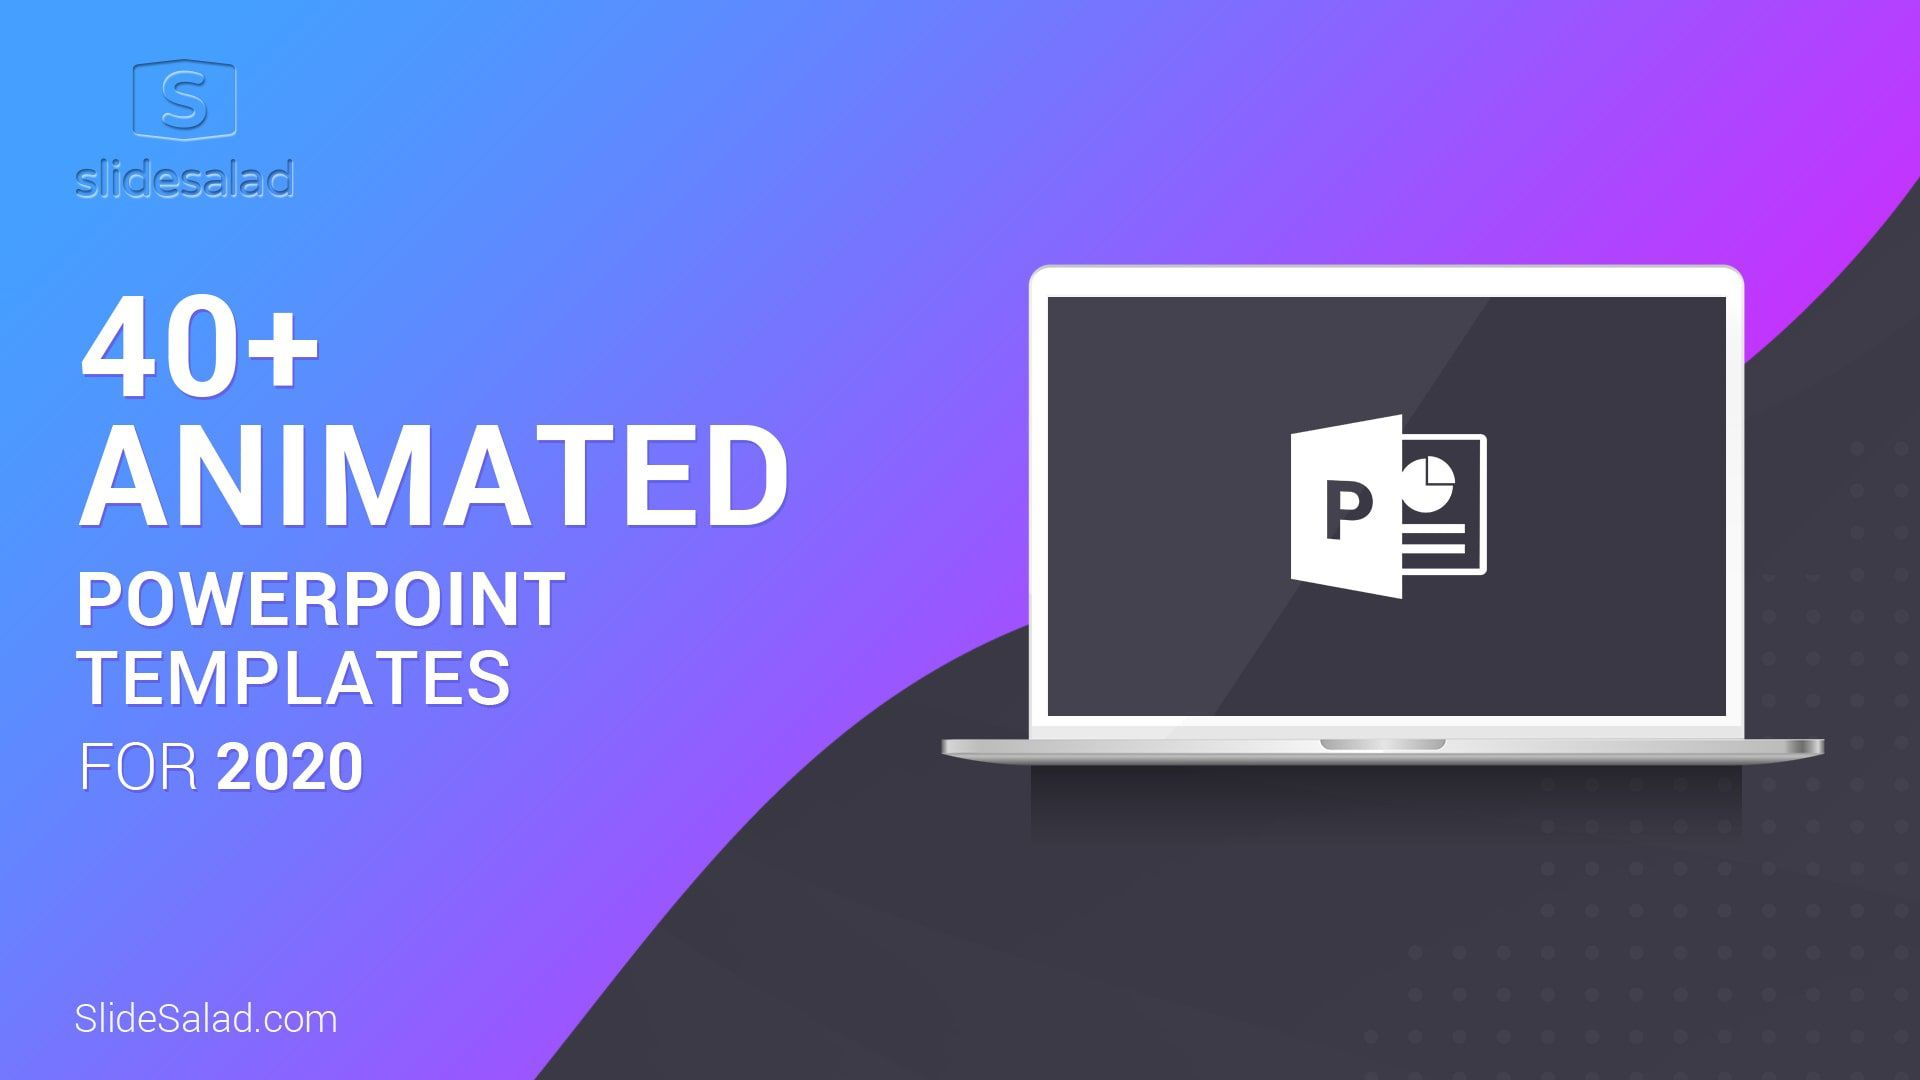 000 Rare Ppt Template For Seminar Presentation Free Download Example Full